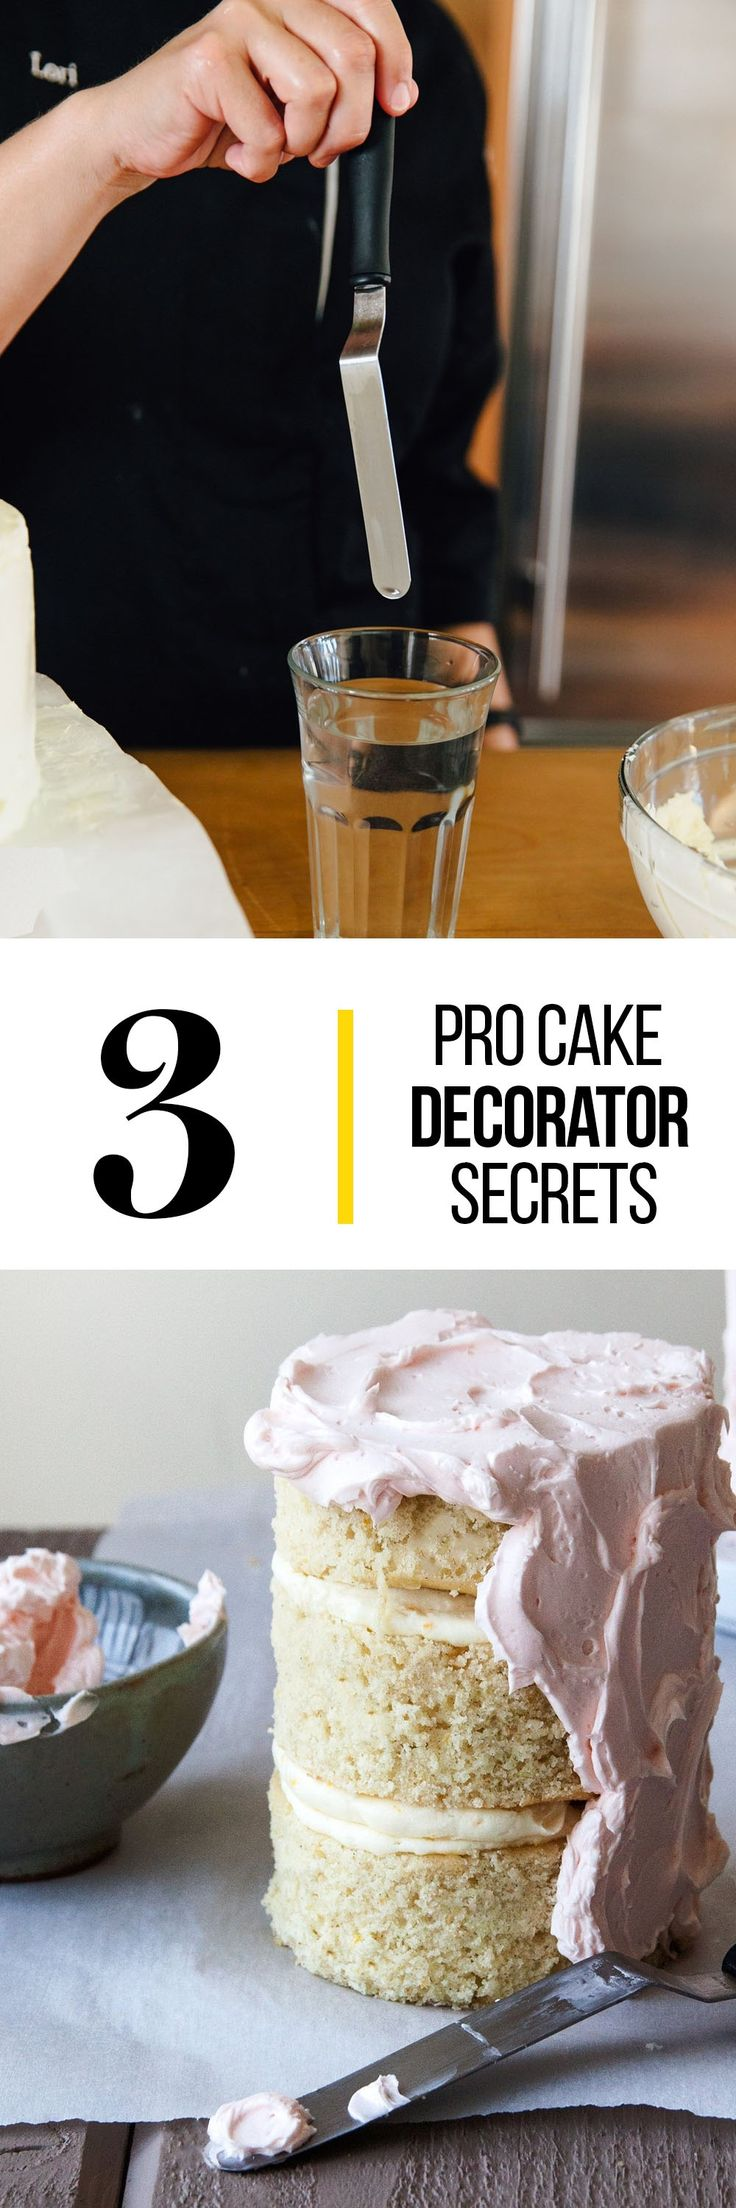 3 Things the Pros Do for a Better Frosted Cake. Want to learn how to perfectly frost a cake for the next birthday party you're baking a cake for? Read these tips and tricks!